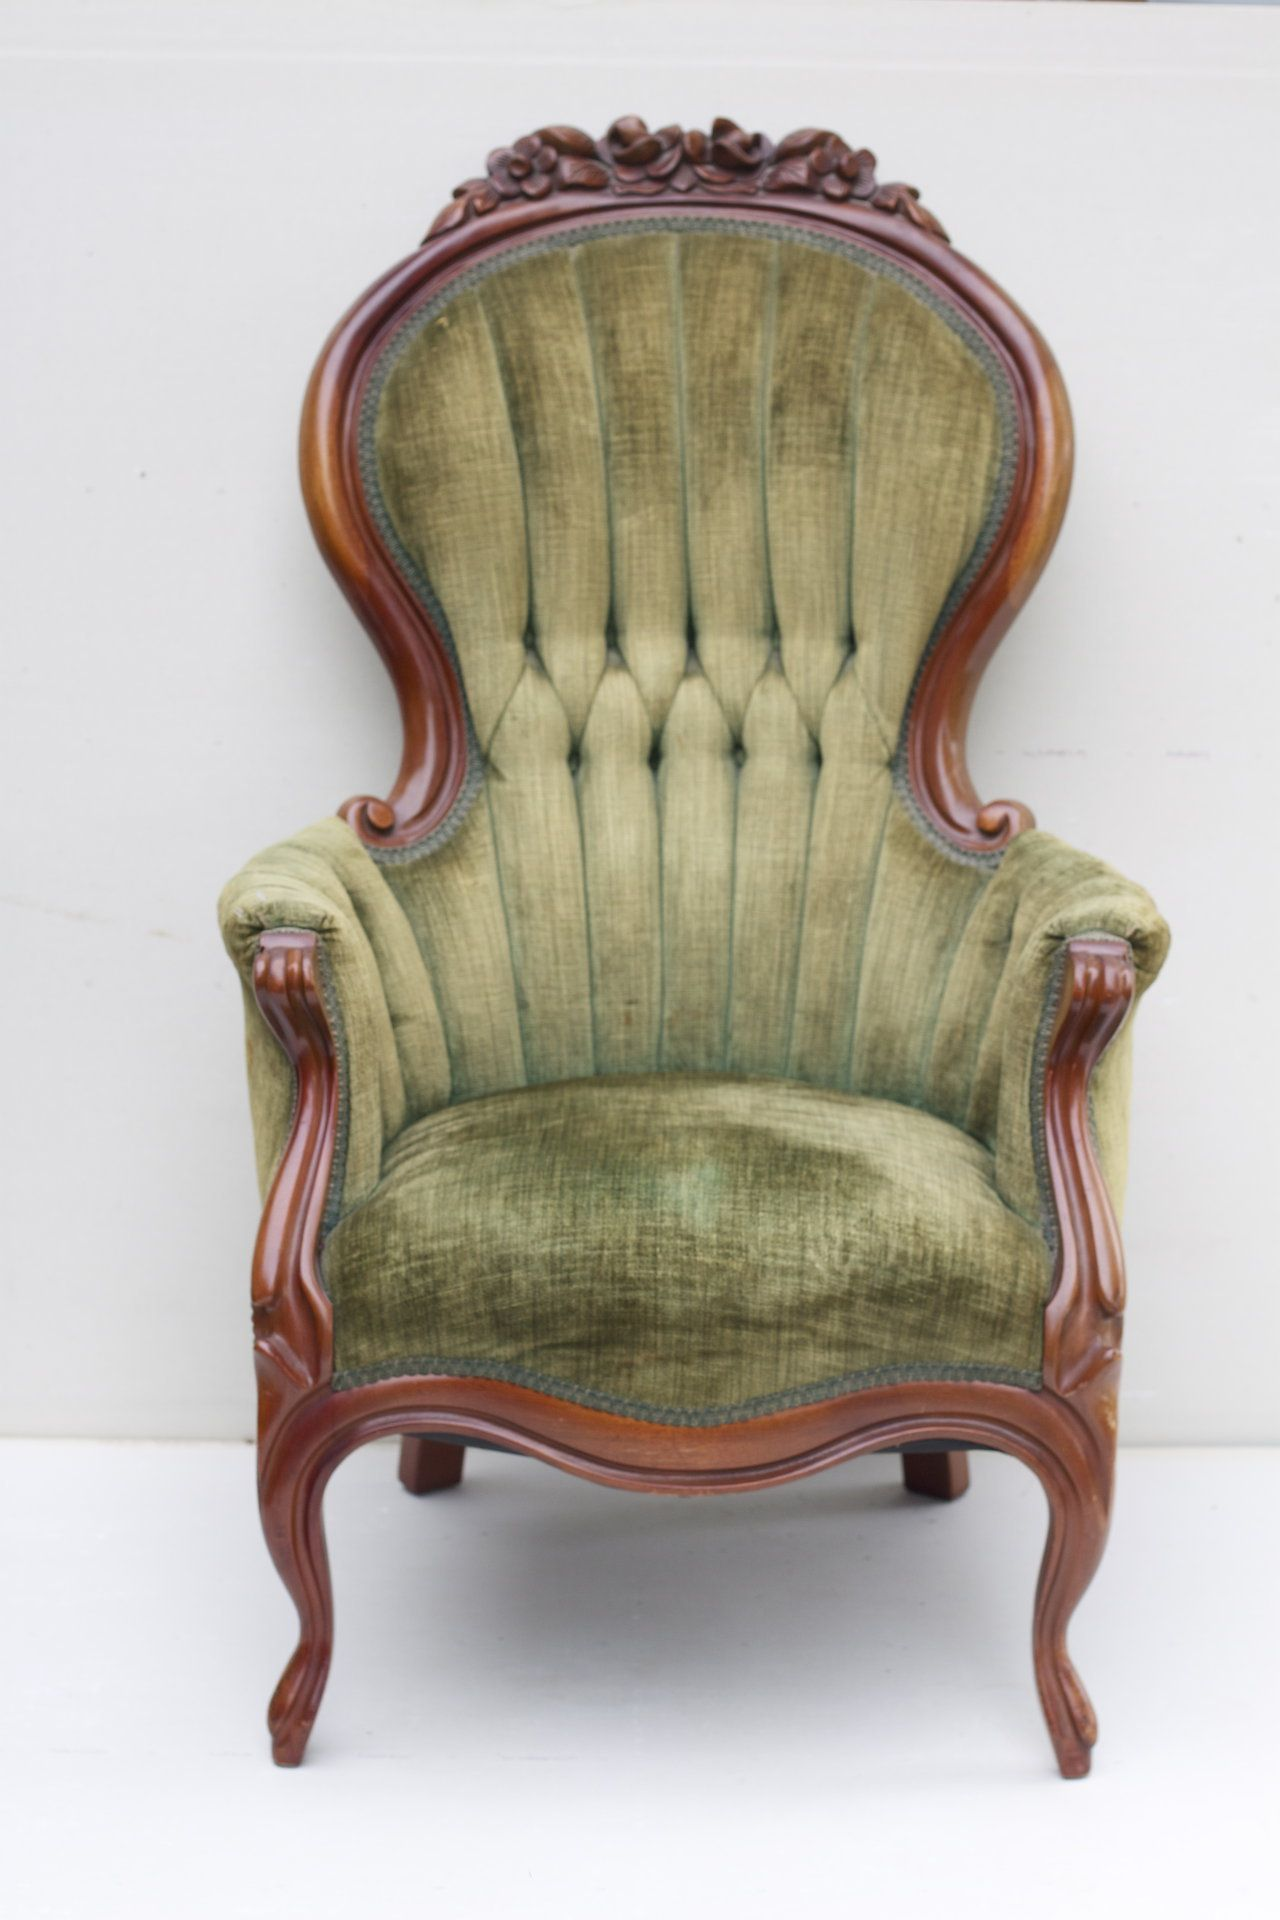 Vintage Chairs Vintage Chair With Tufted Sage Green Chenille Upholstery